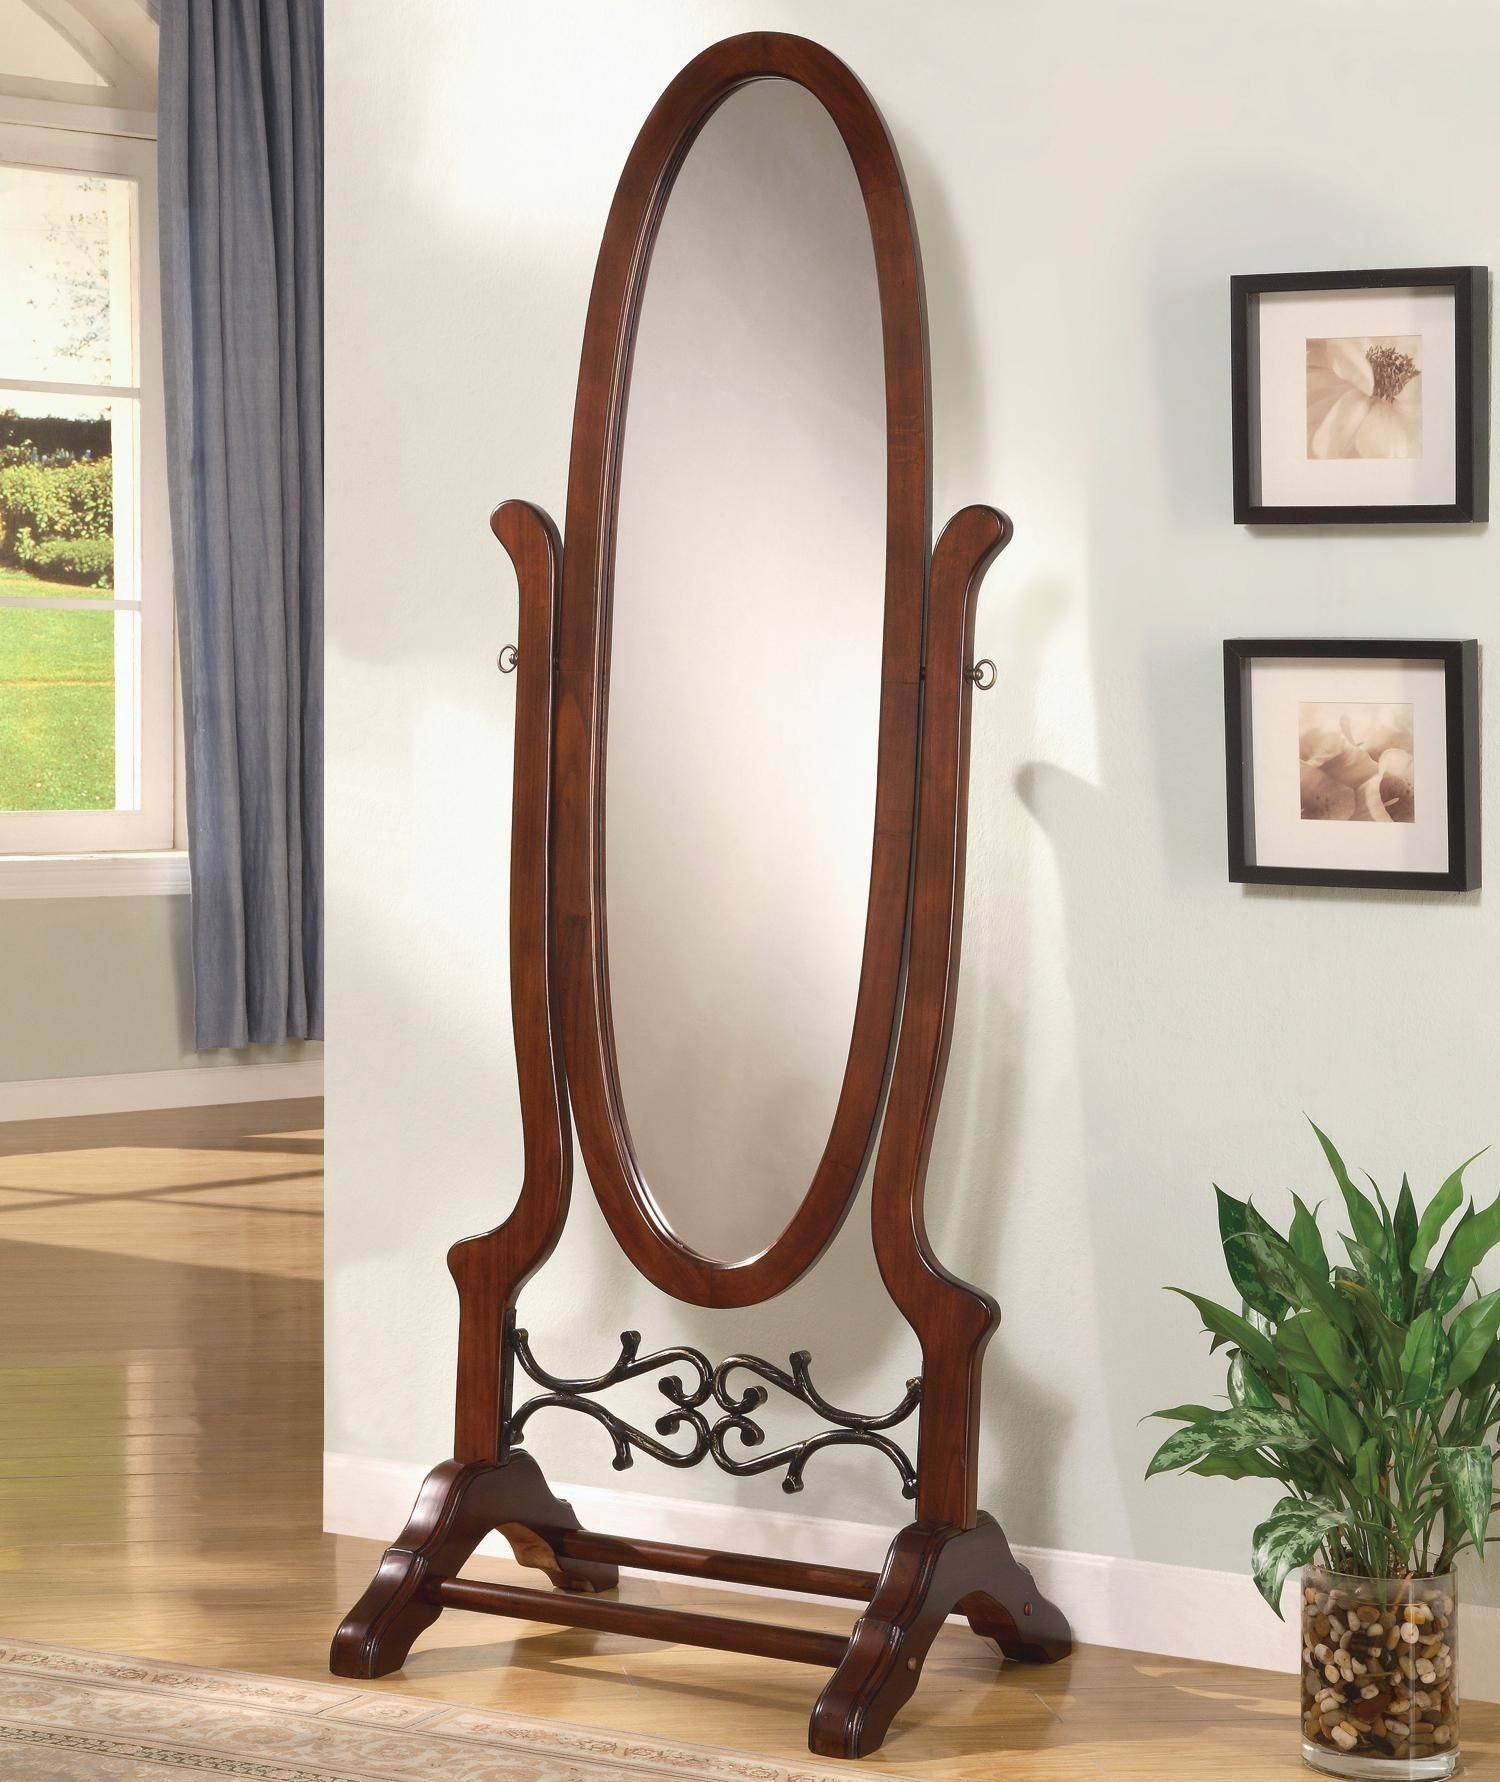 Decorating: Amusing Cheval Mirror For Home Furniture Ideas — Mtyp Intended For Oval Freestanding Mirrors (View 9 of 25)